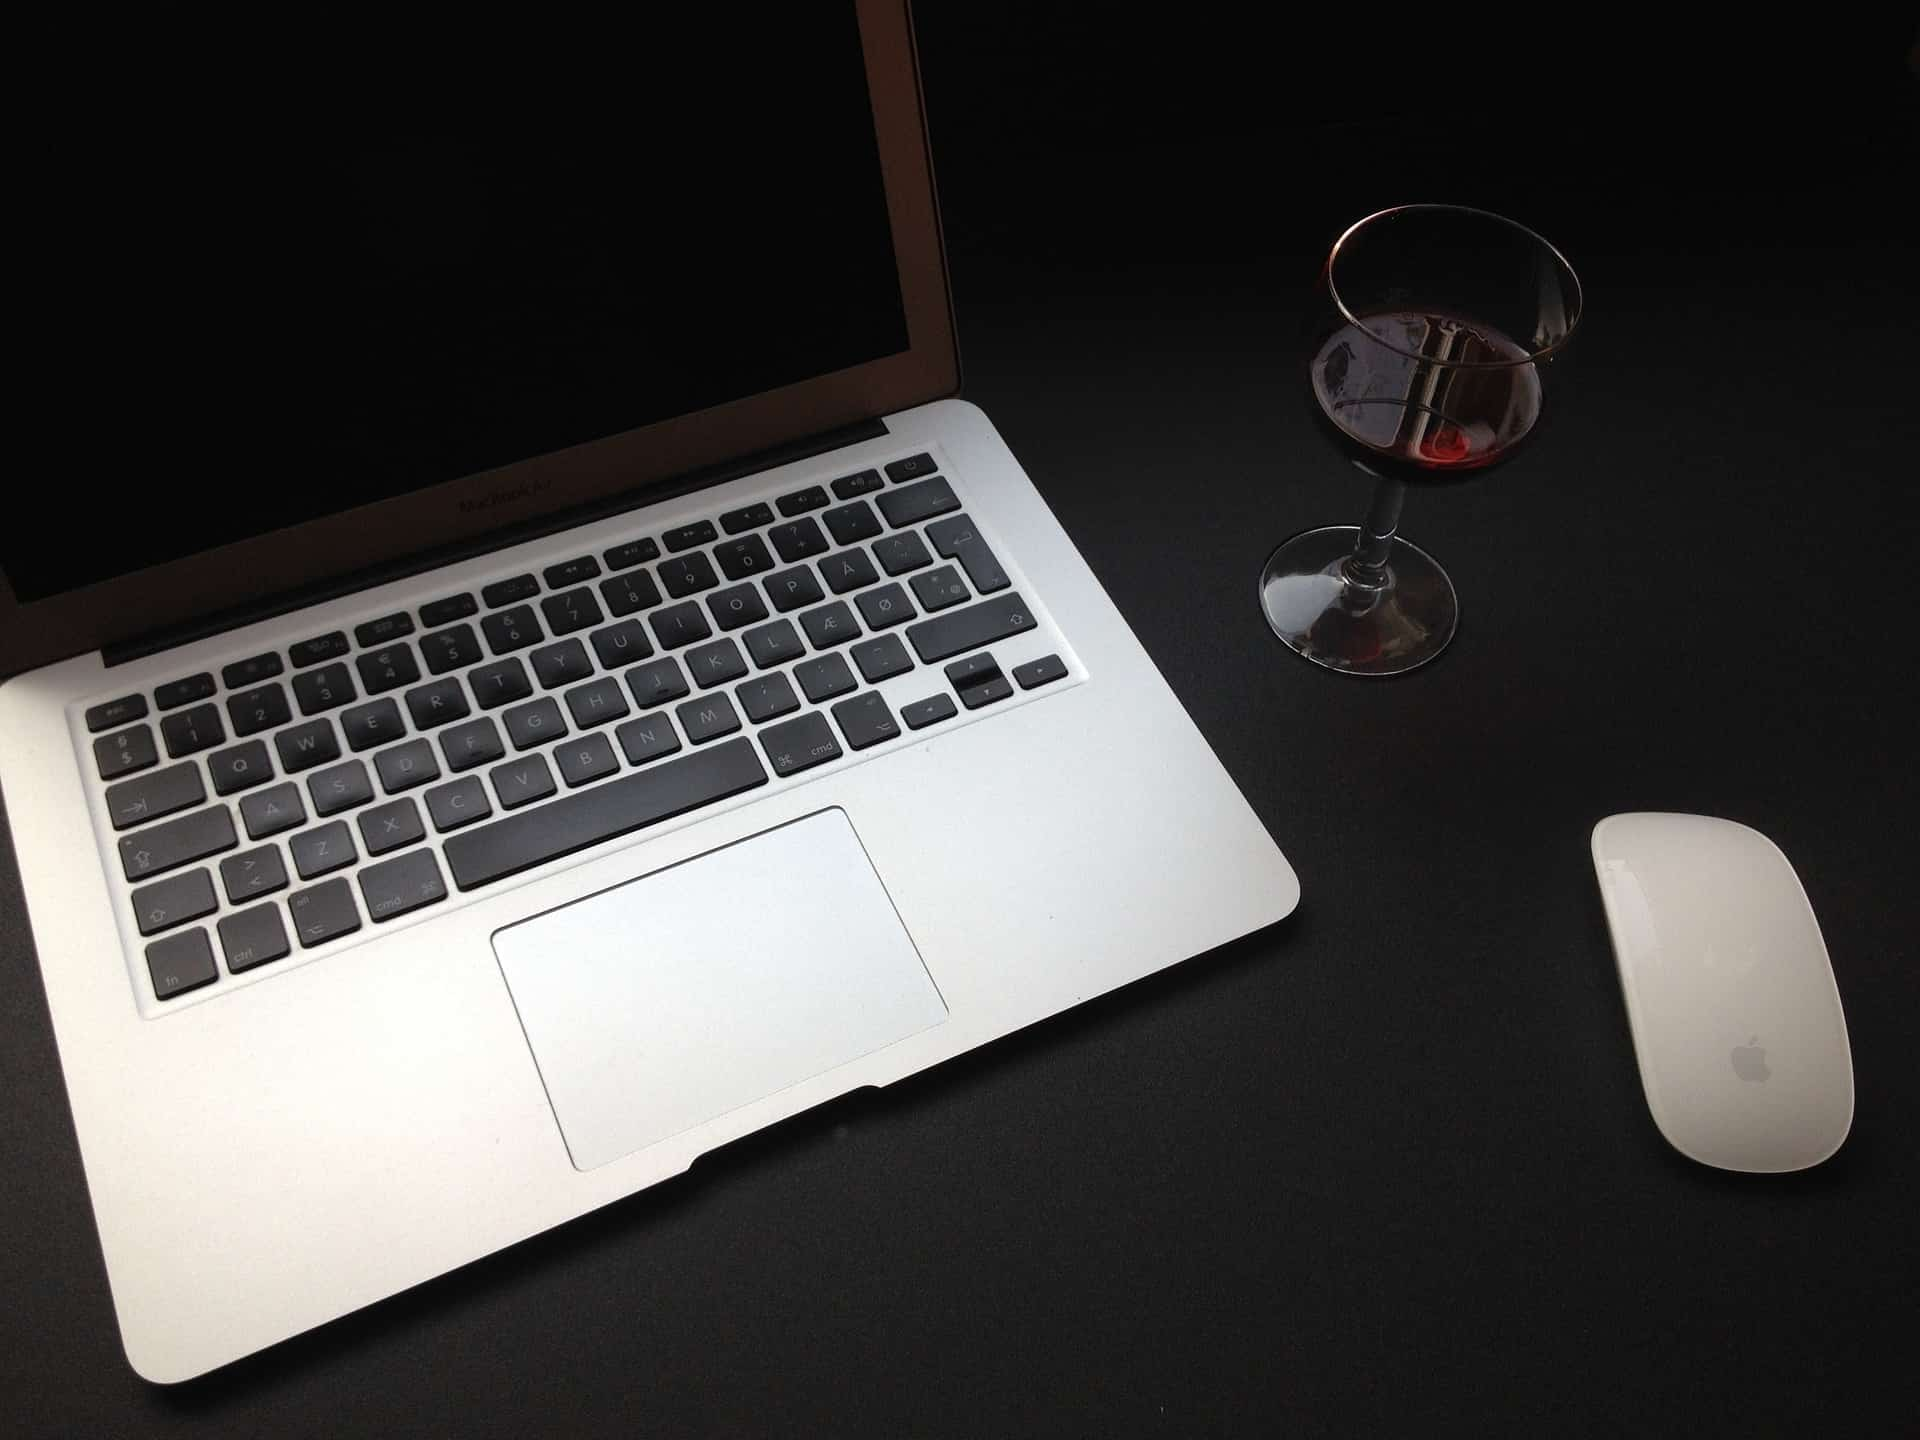 Send wine online as a gift using the right websites.